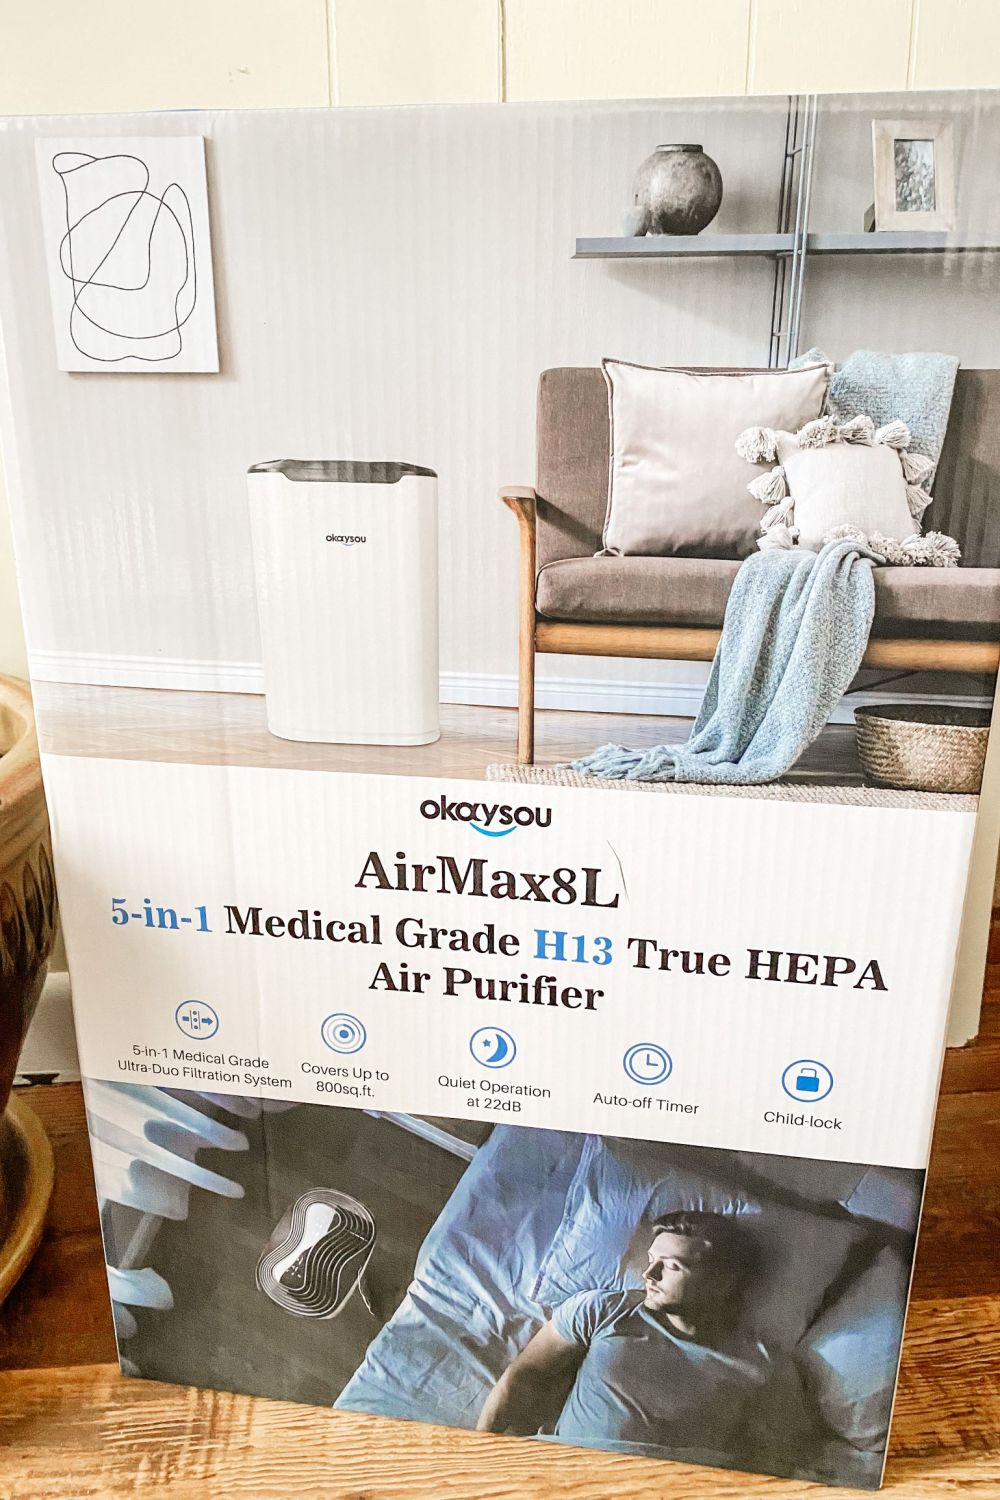 okaysou air purifier review: air purifier for pet odor